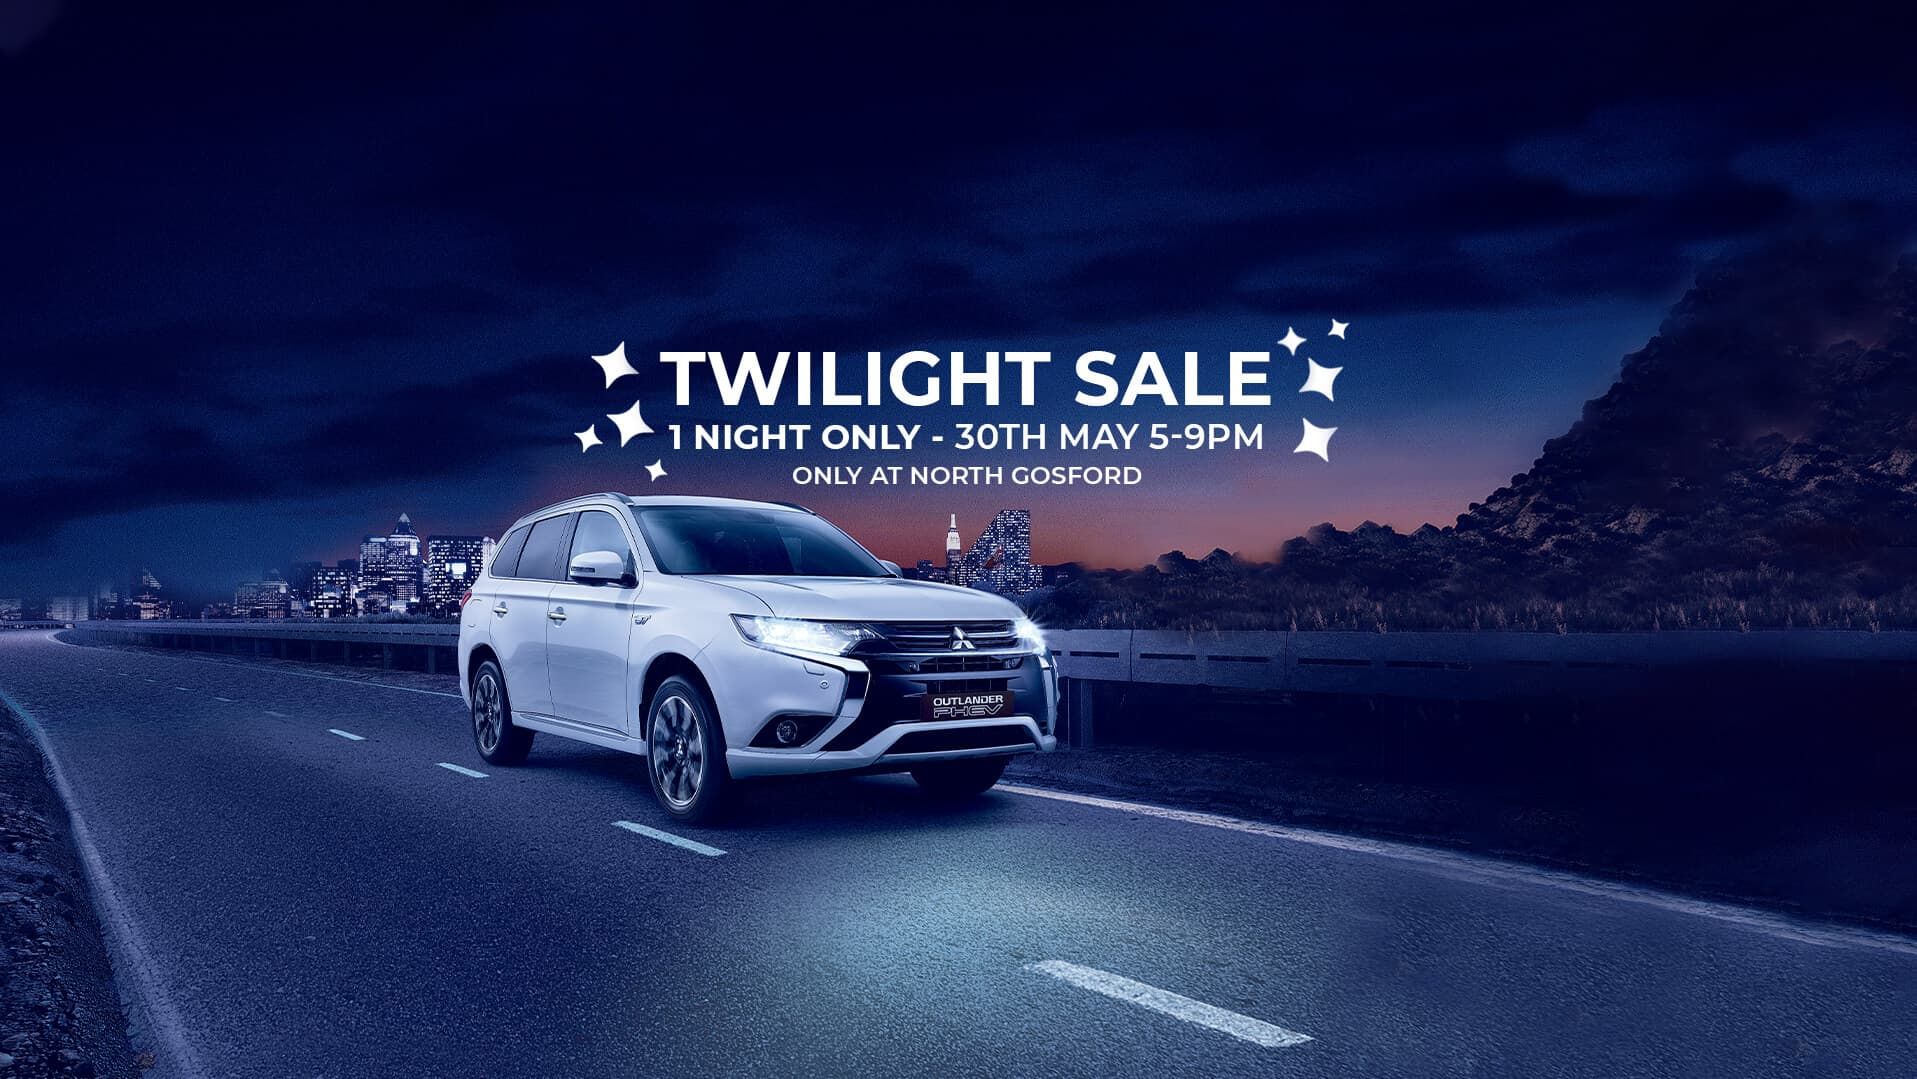 Booth's Motor Group Twilight Sale